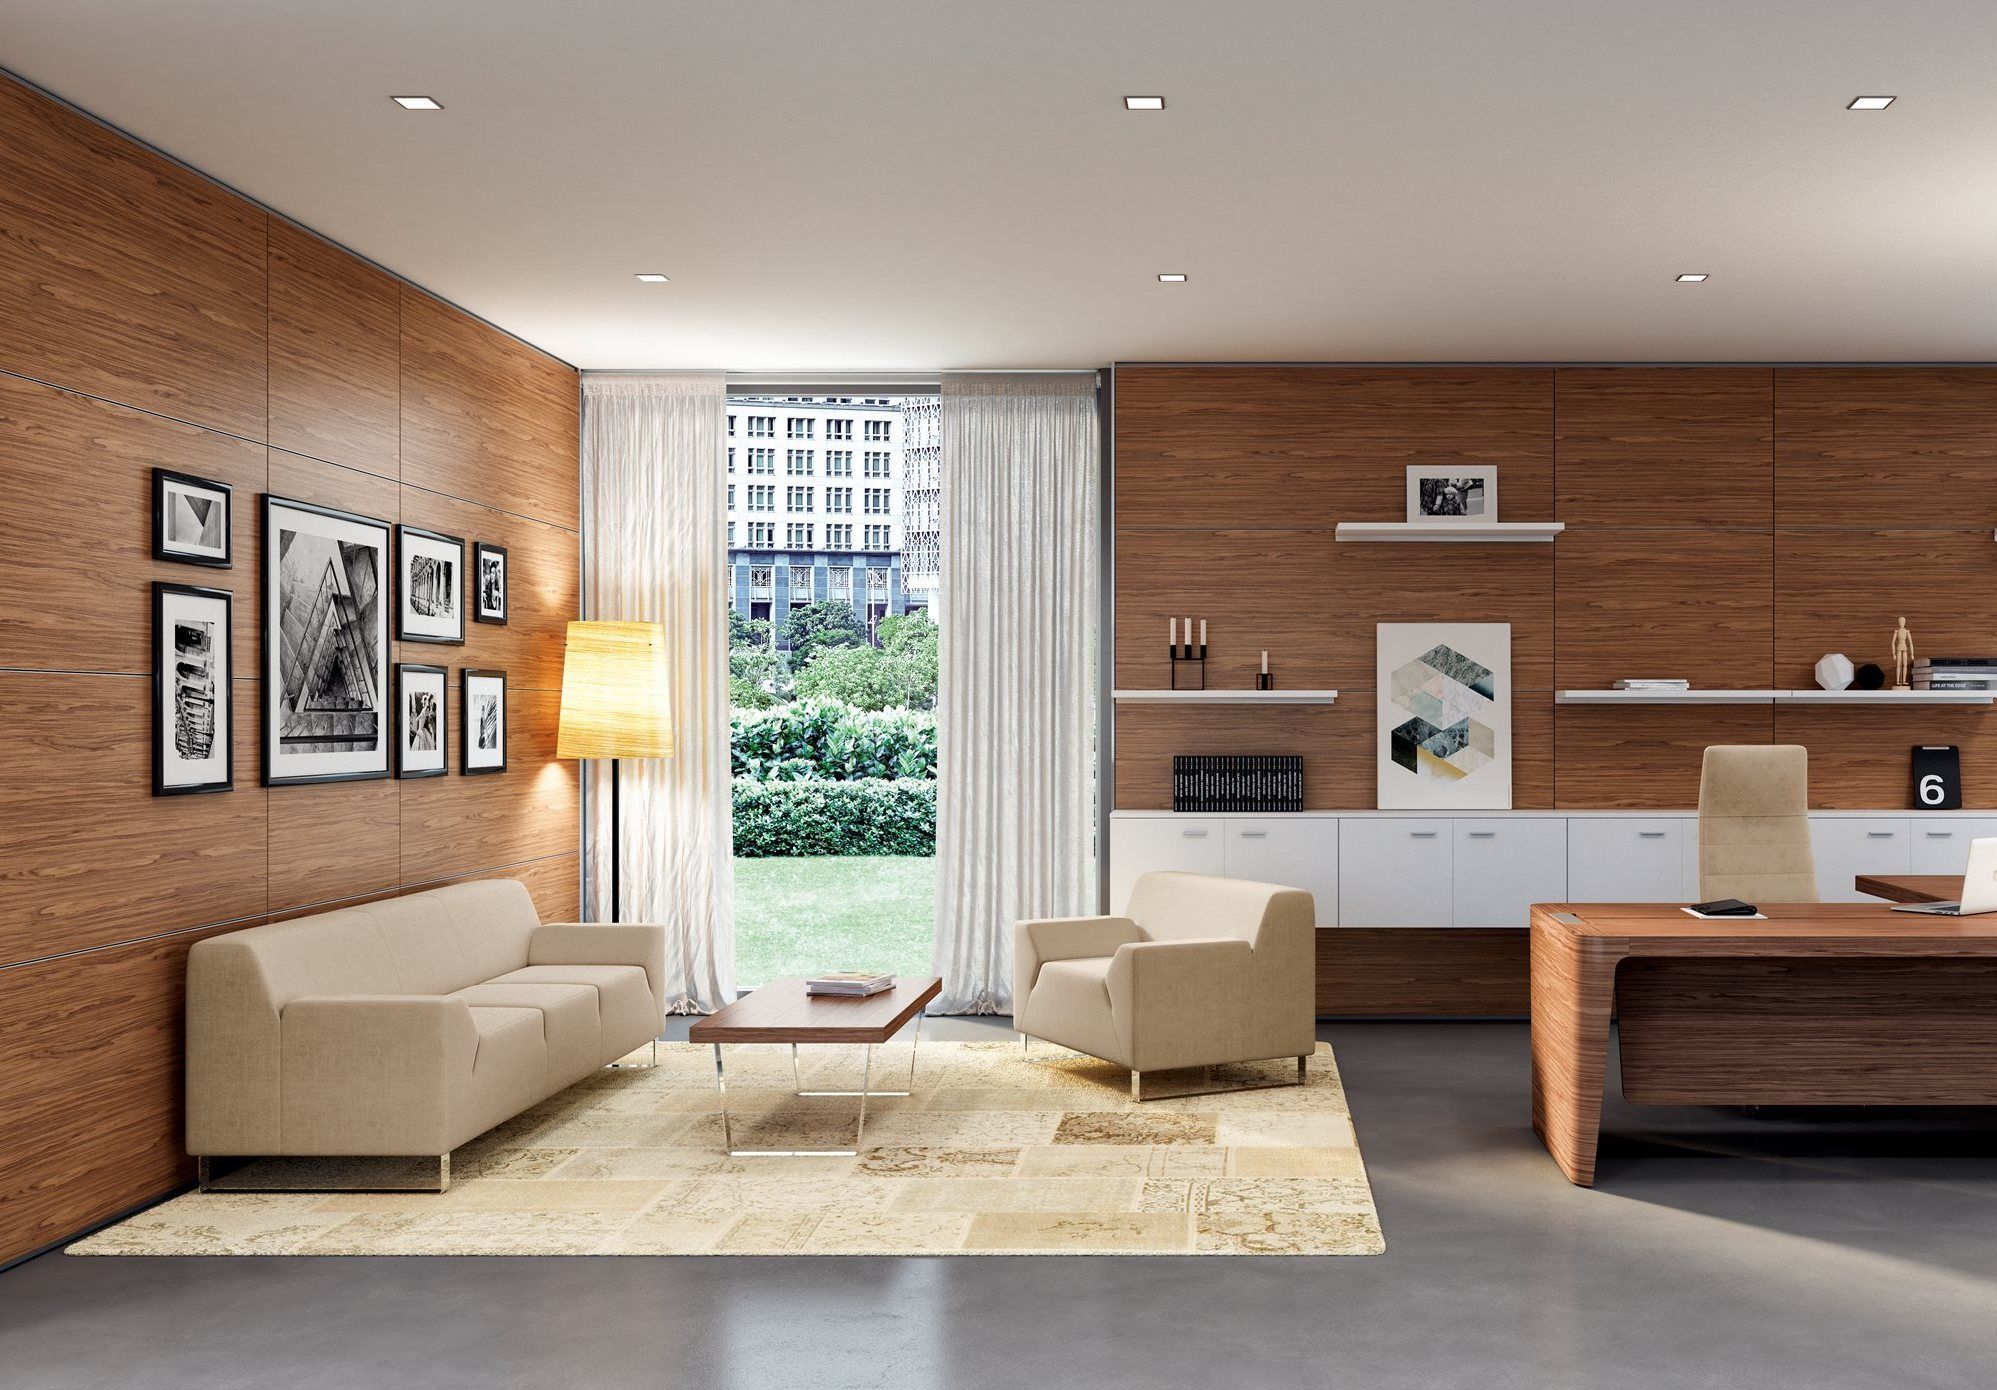 High End Office Design In Brown White And Beige This Stunning